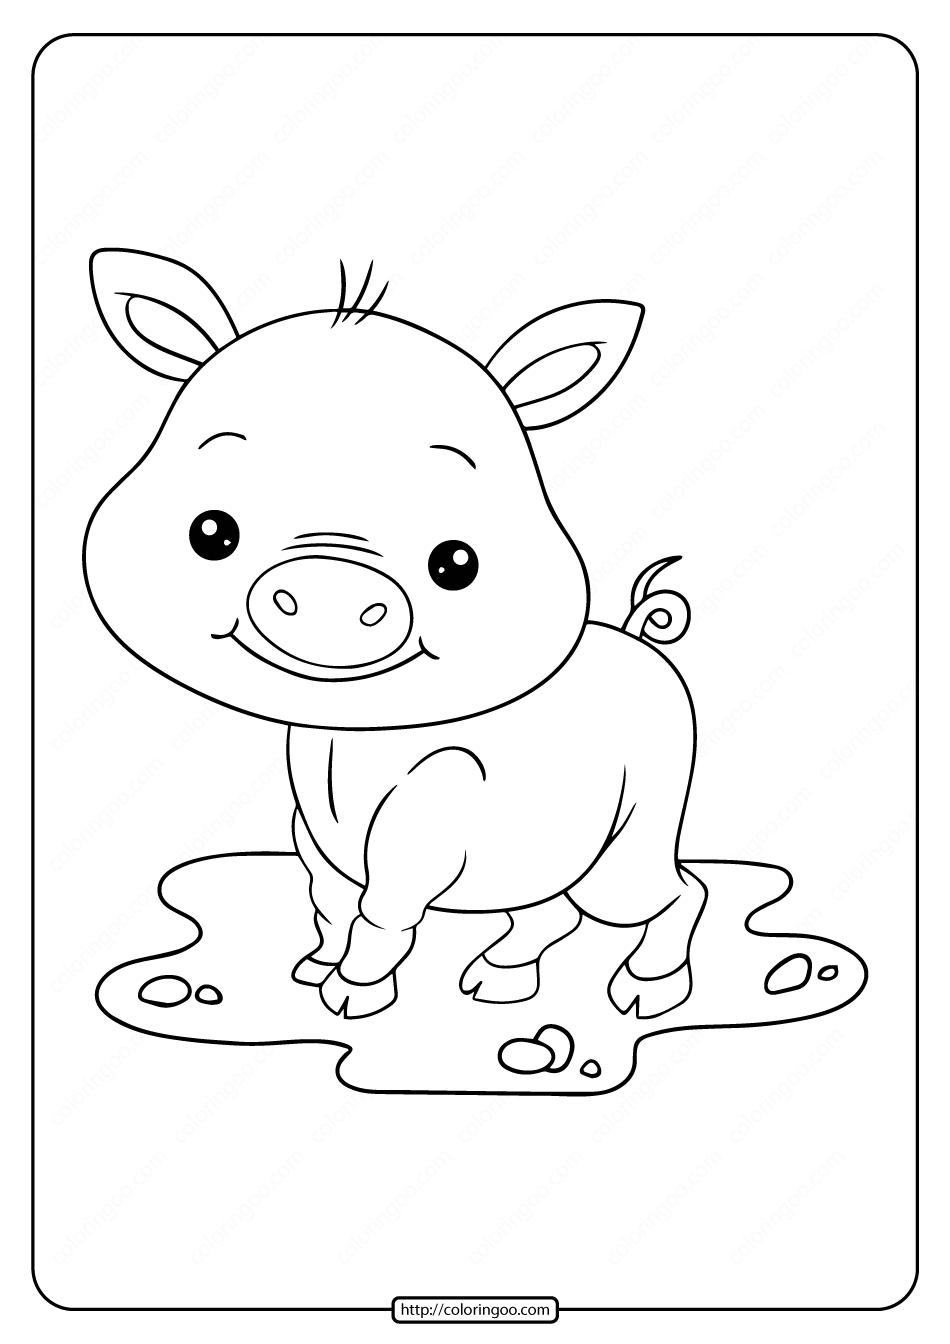 coloring pig pictures printable baby cute pig coloring pages coloring pig pictures